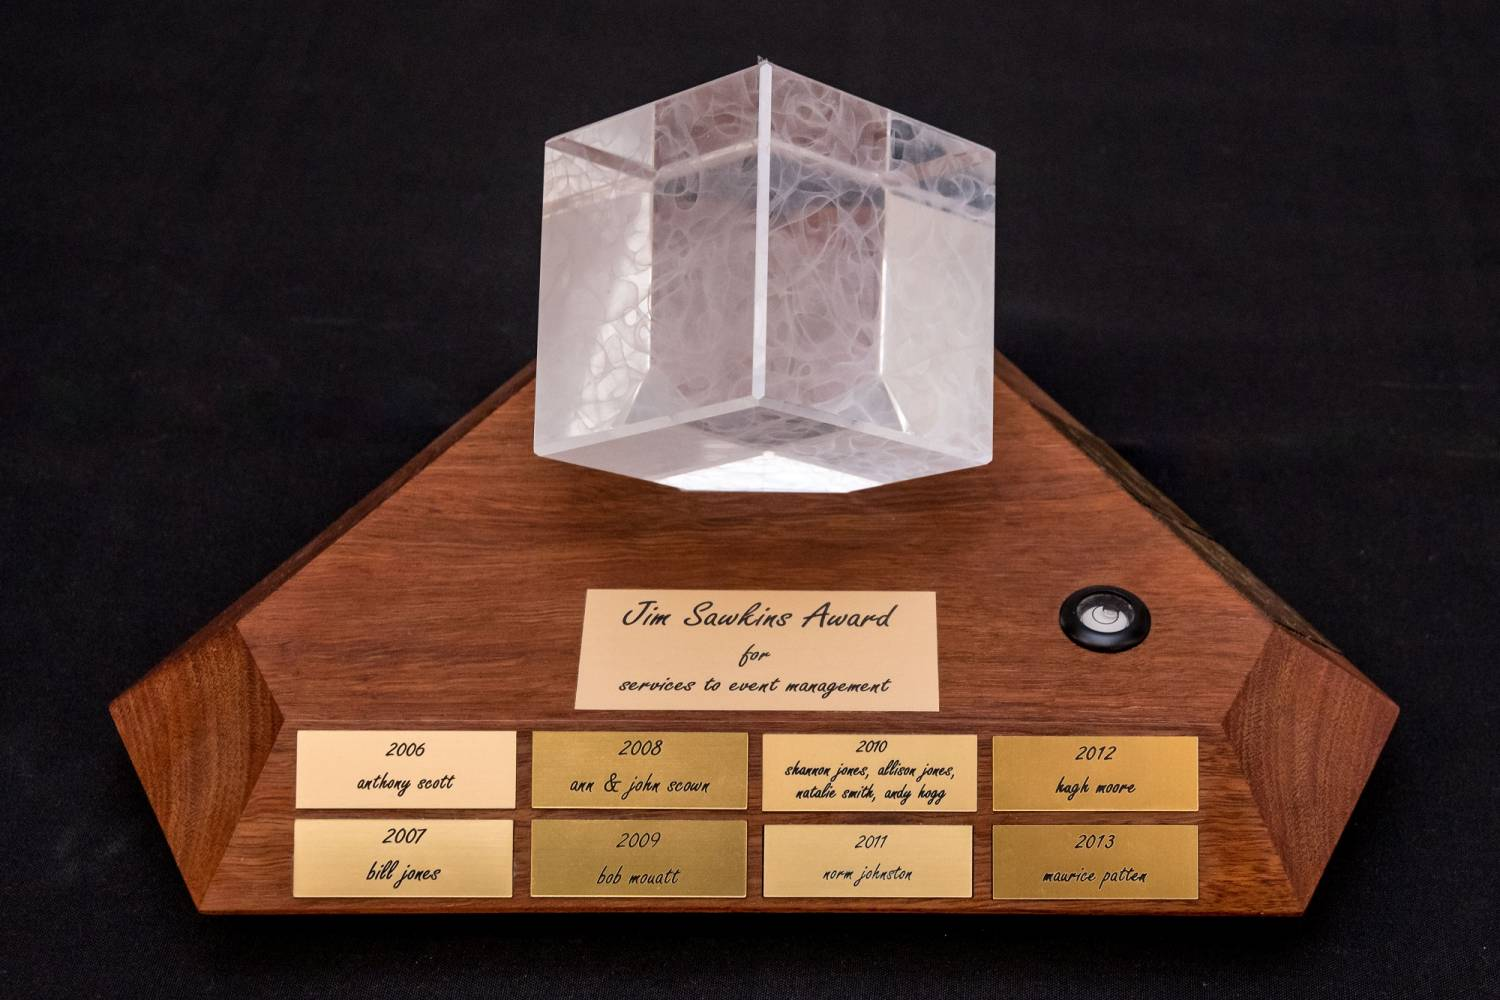 Nominations Sought for Major Awards